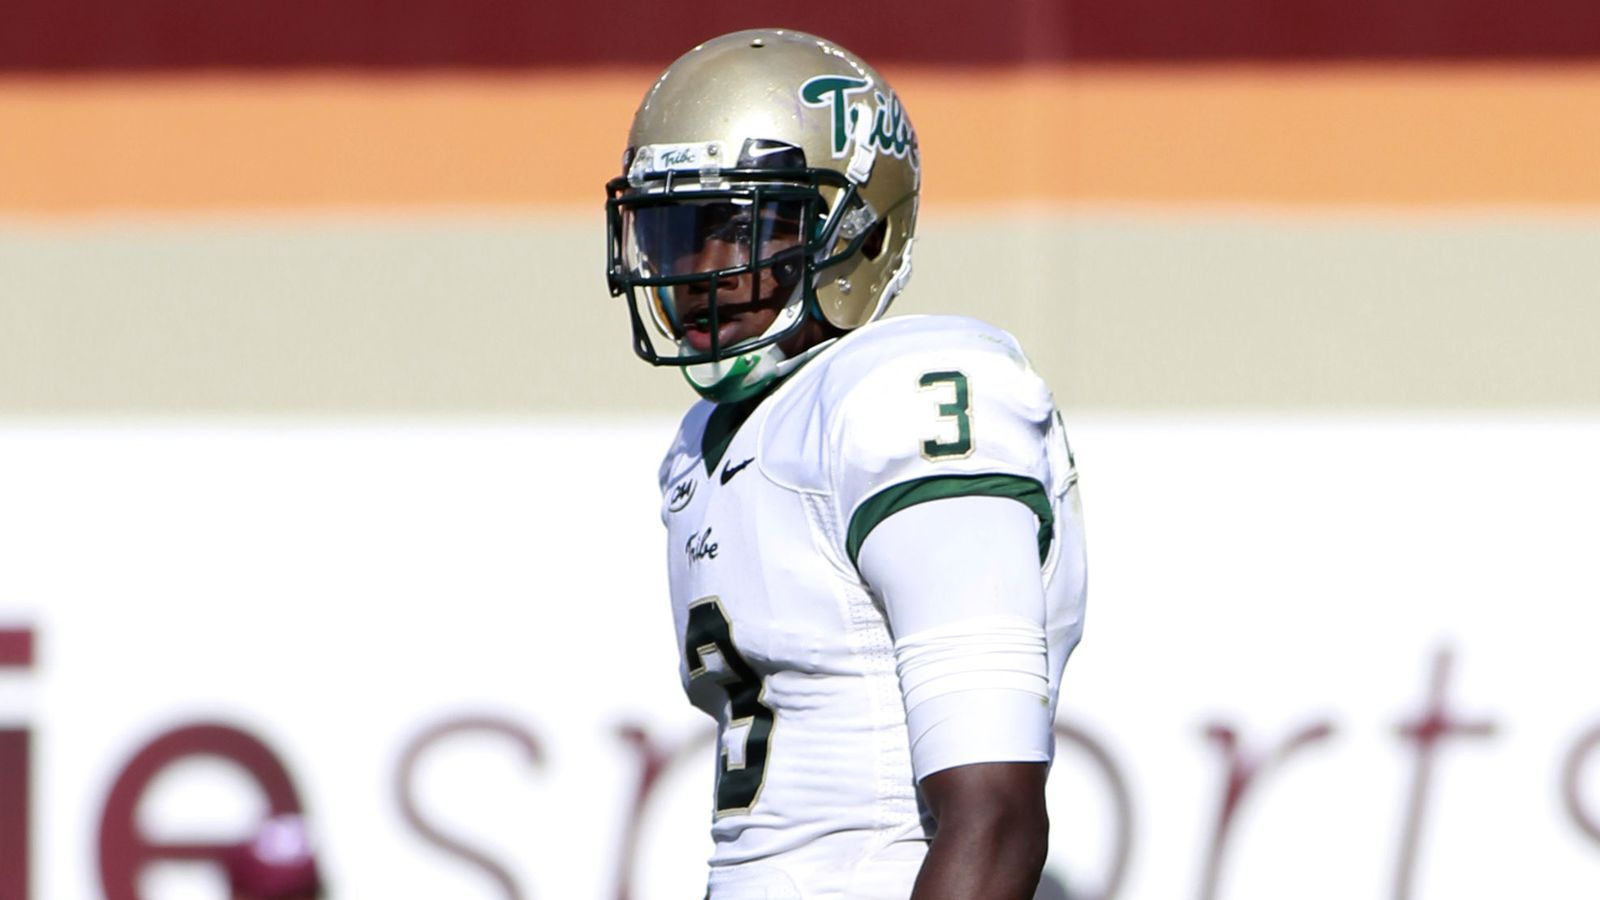 Scouting The Draft: Tre McBride, WR, William & Mary - Gang Green ...